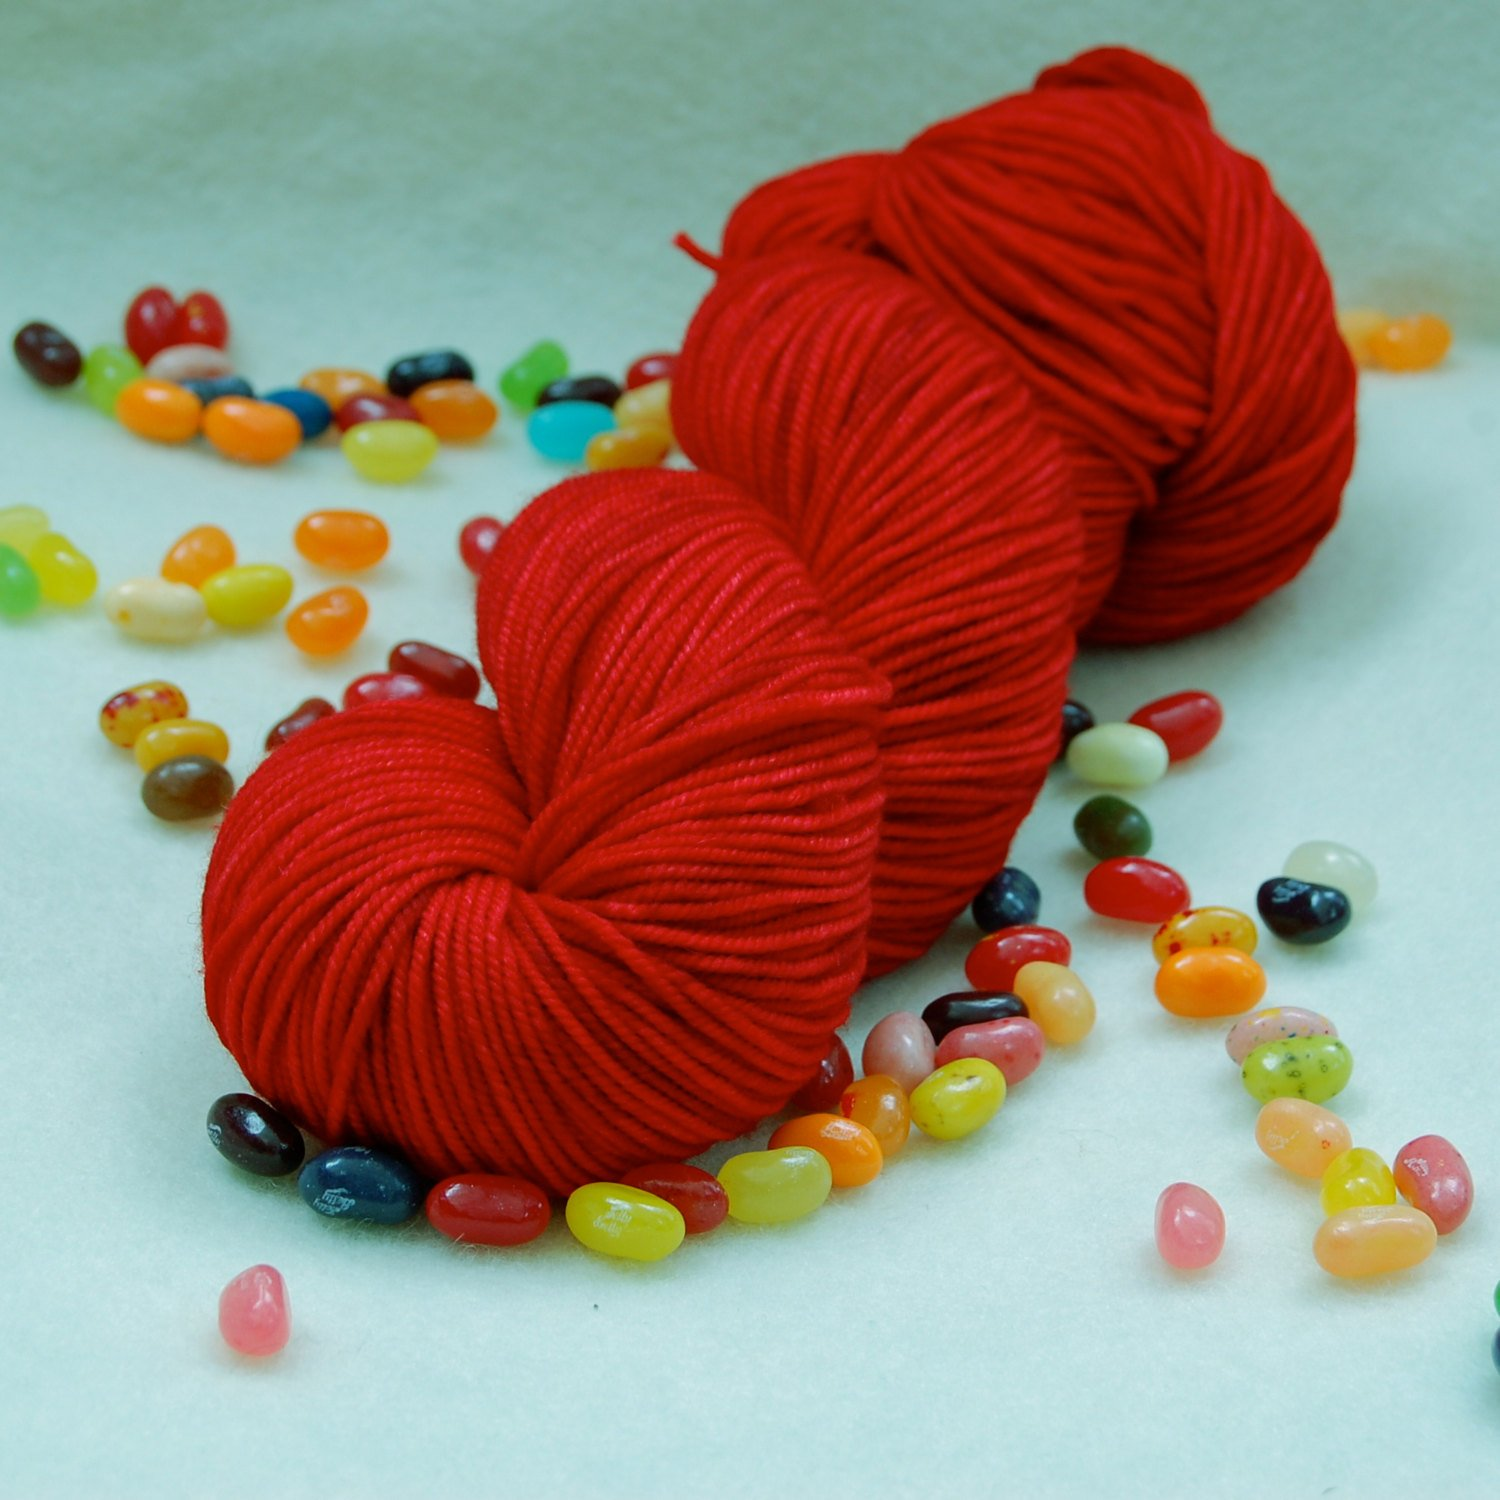 Red Victory Sock by Knitted Wit